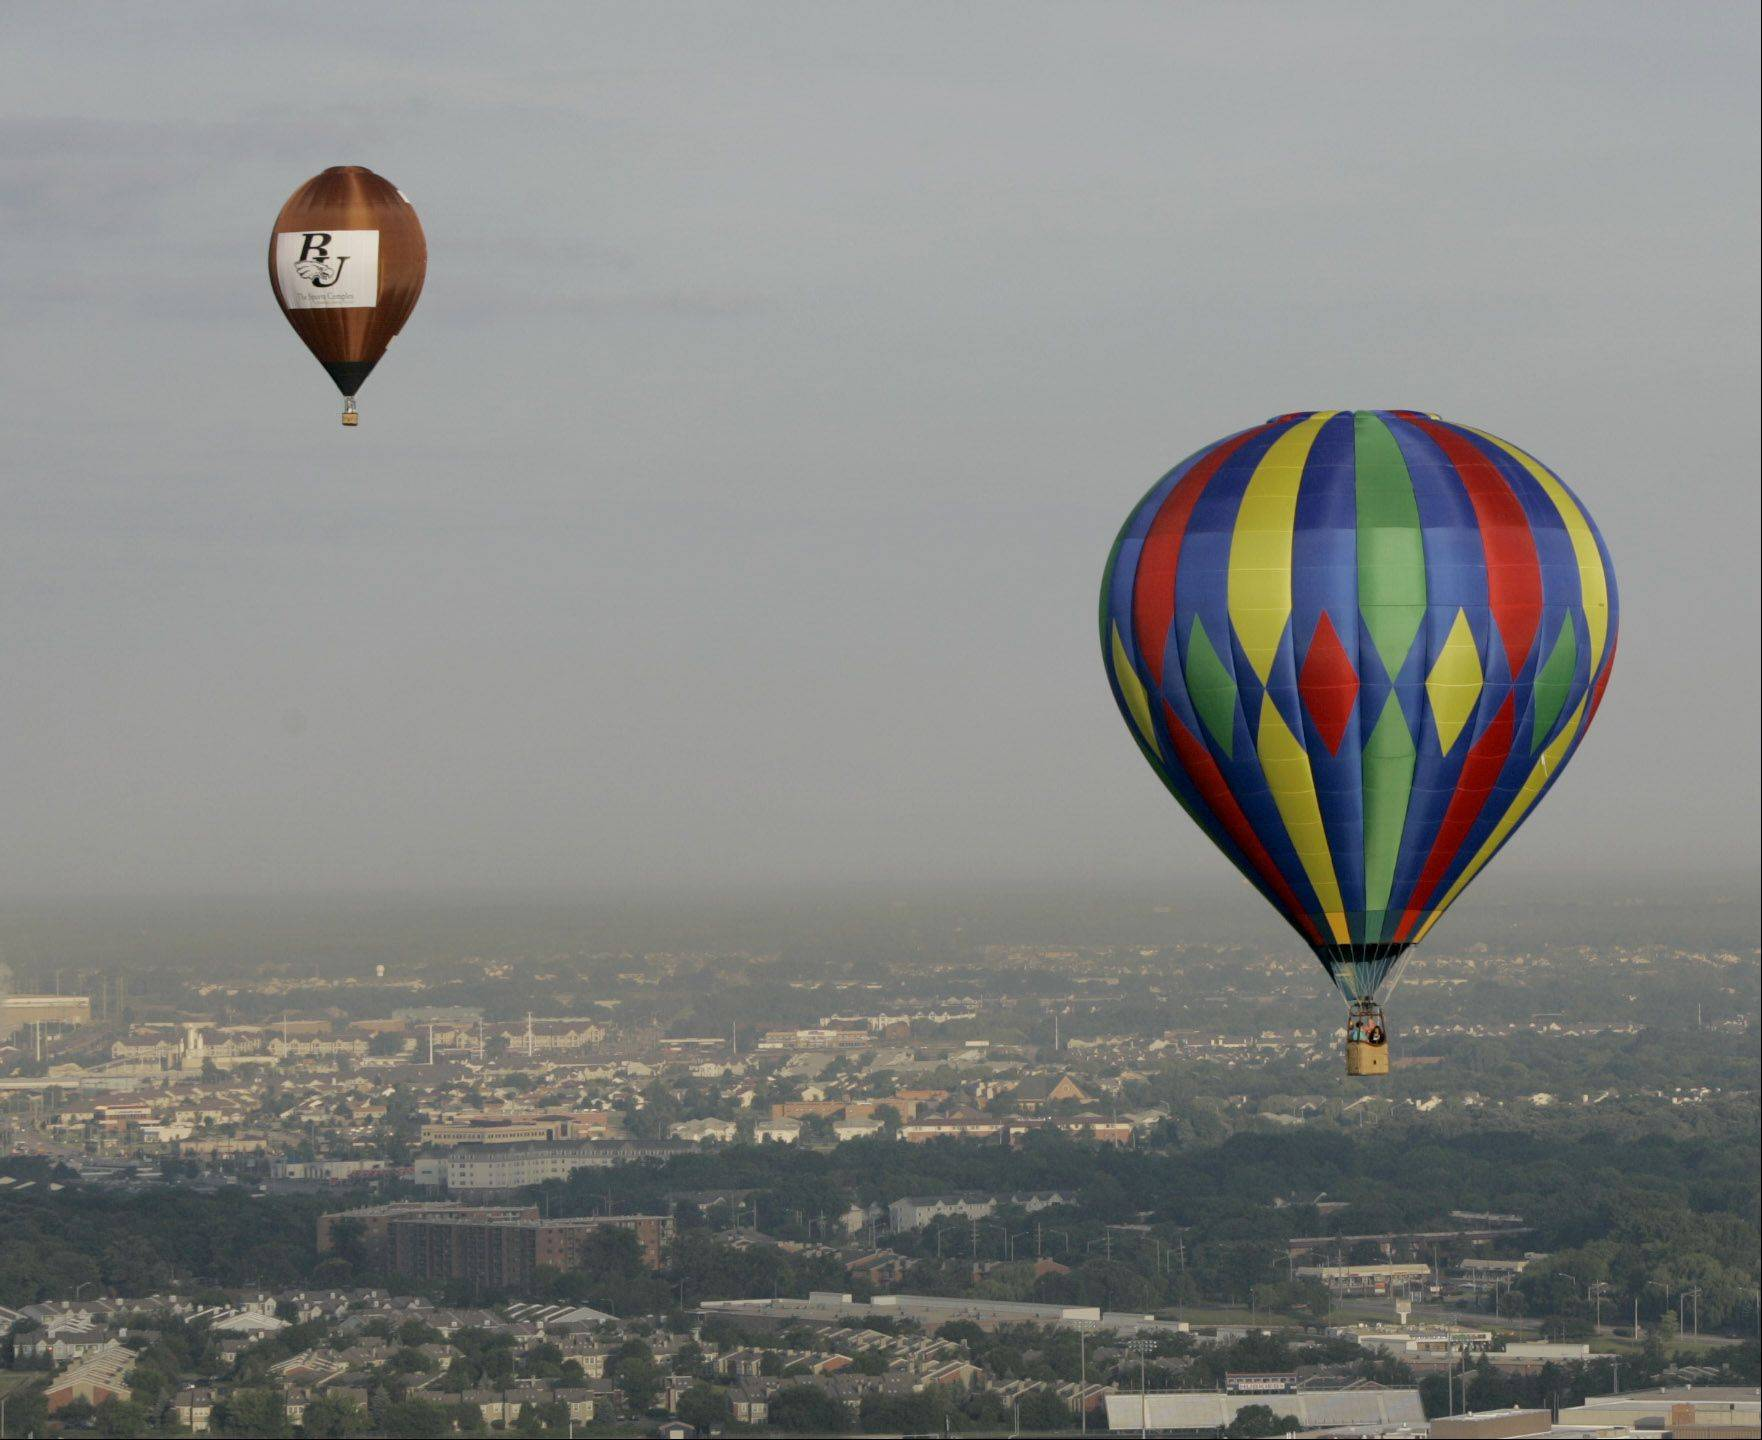 A Kentucky man, Scott McClinton, will serve as the new Balloon Meister for this year's Eyes to the Skies Festival in Lisle when it takes flight July 3 through 5.